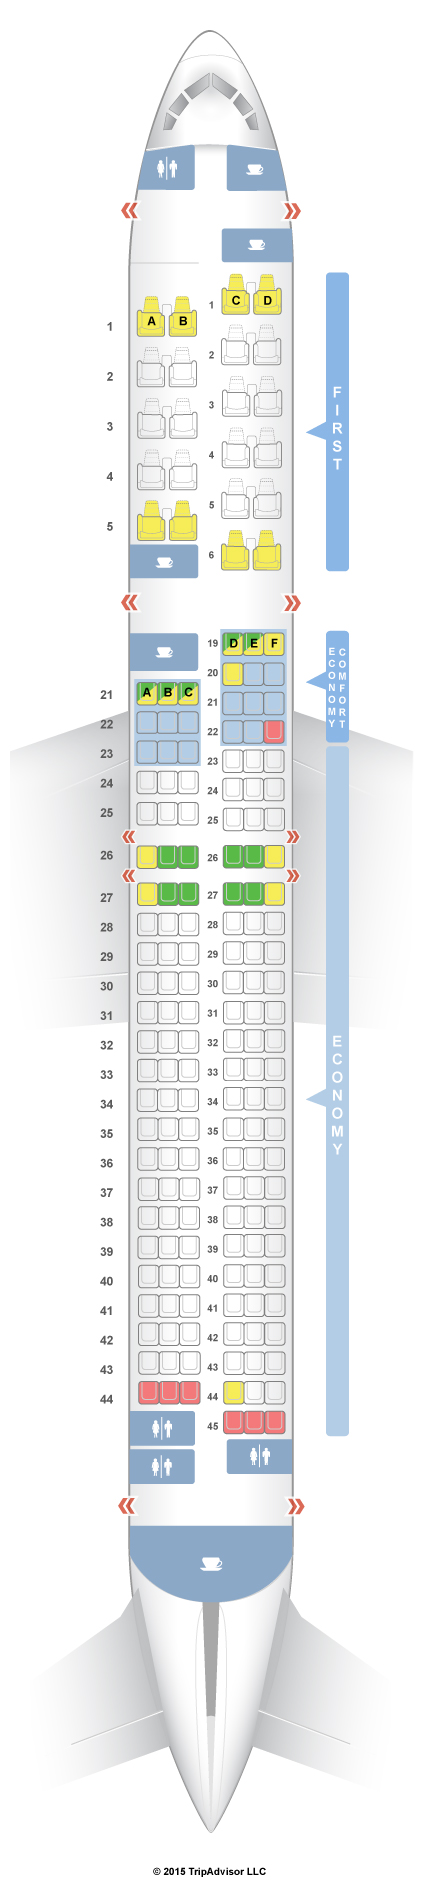 Seatguru Seat Map Delta Boeing 757 200 75v Hawaii Seatguru Seating Charts Boeing